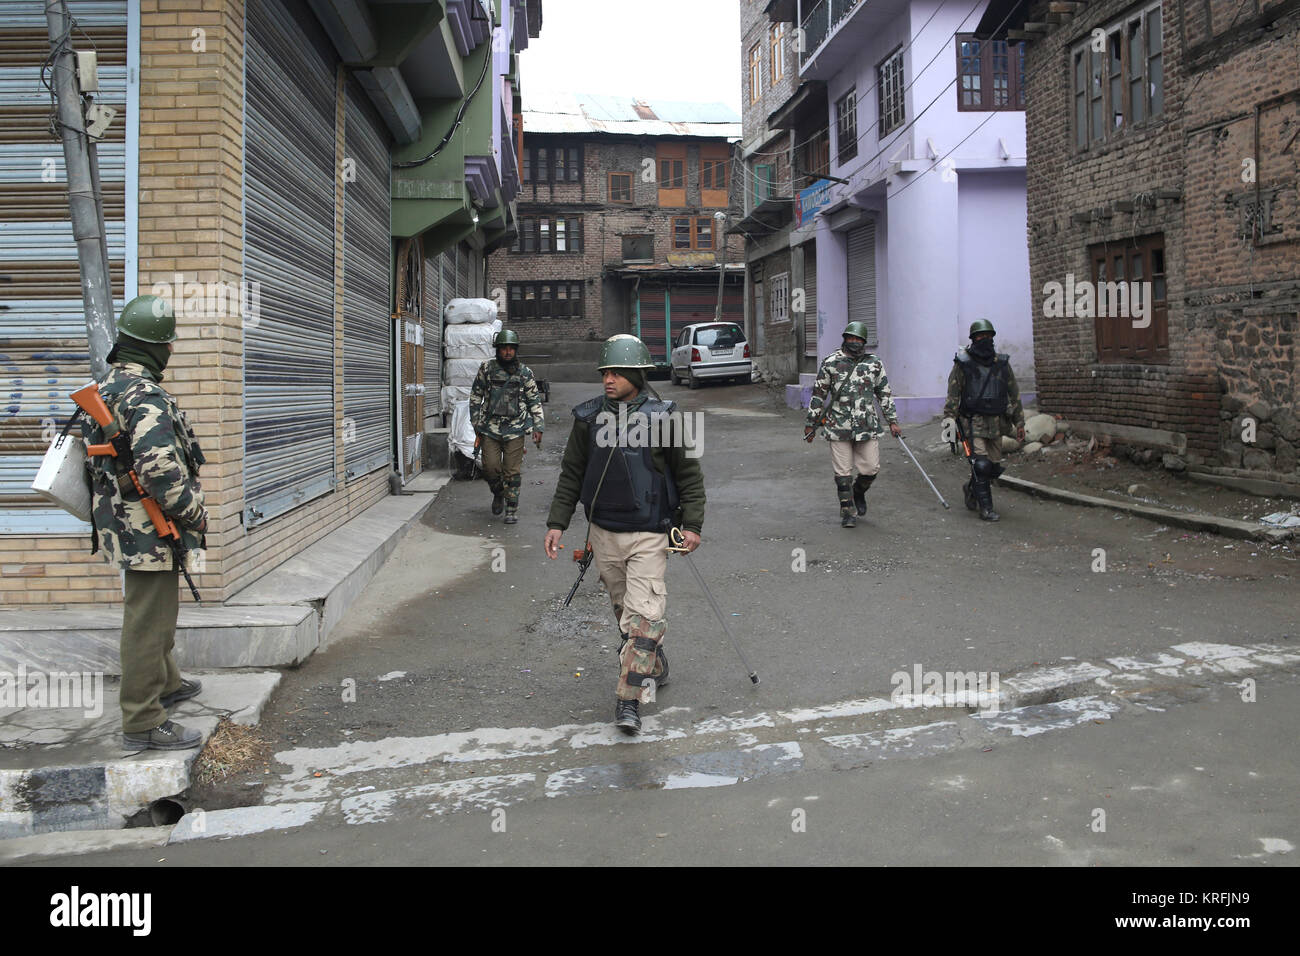 Srinagar, Kashmir. 20th Dec, 2017. Indian paramilitary troopers stand guard at a closed market during restrictions - Stock Image